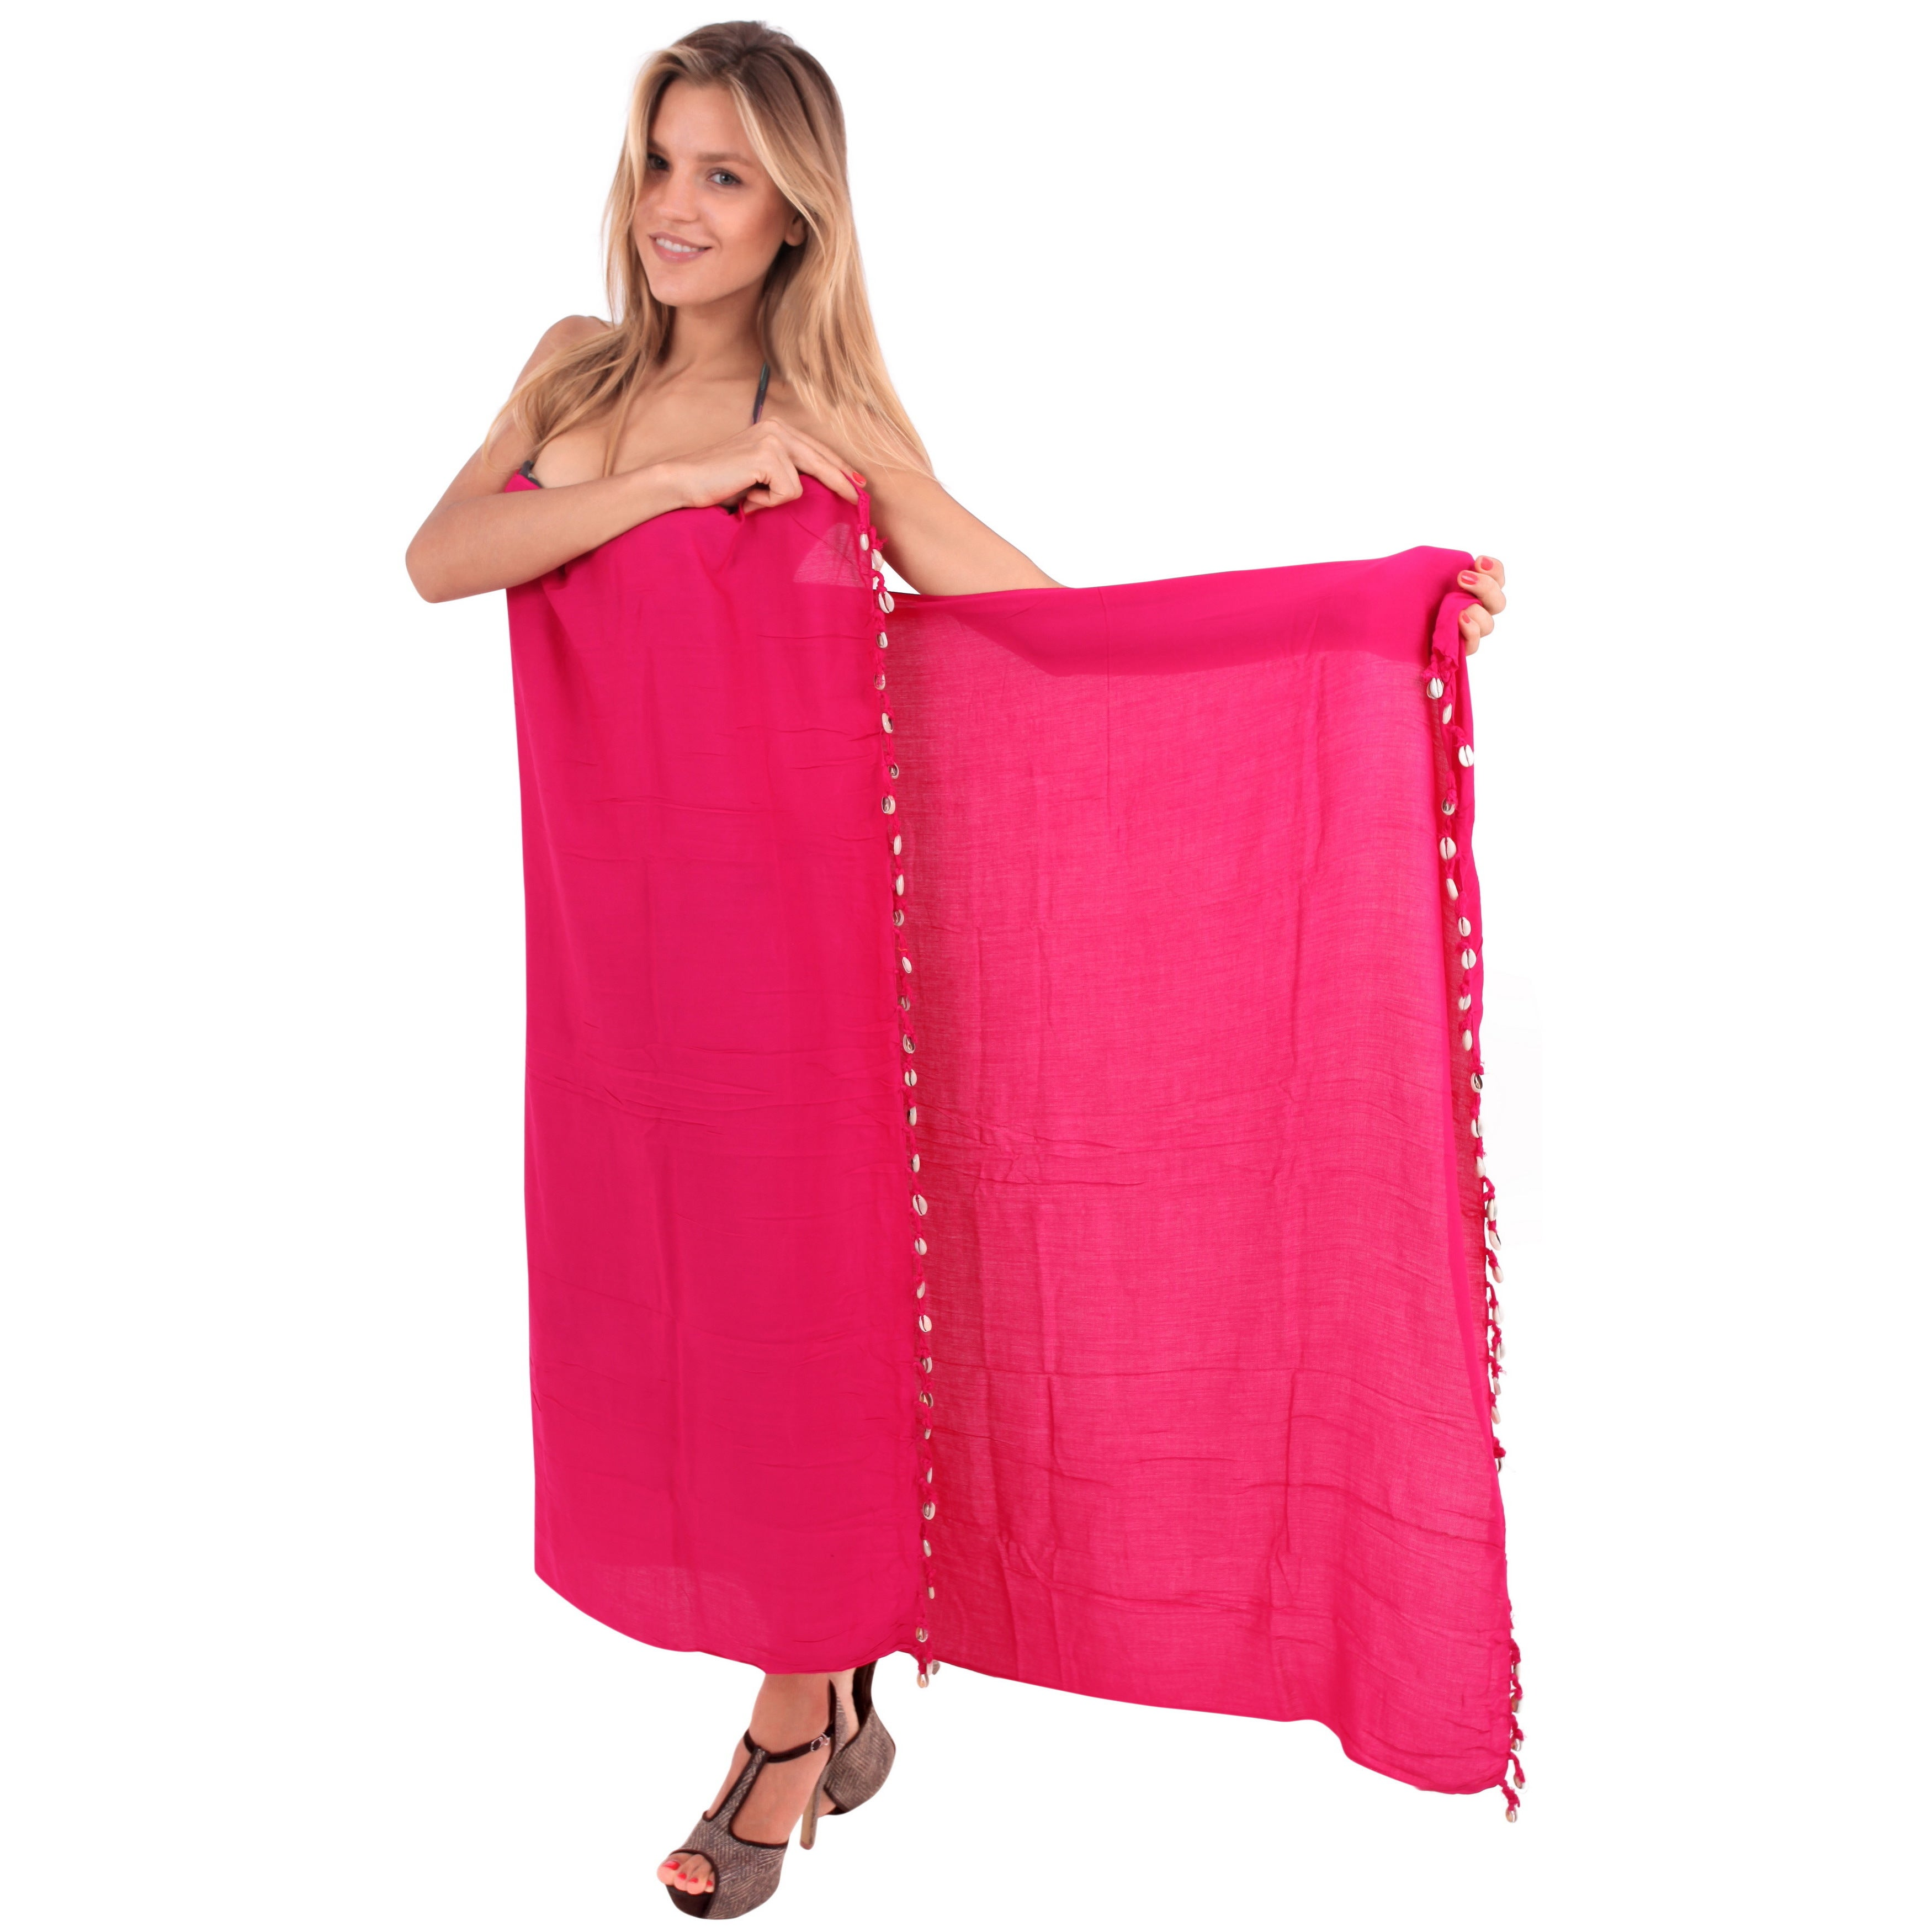 8c8194359605f Shop La Leela Women's Pink Rayon 70-inch x 43-inch Shell Tassled Beach  Cover-up Sarong With Free Clip - Free Shipping On Orders Over $45 -  Overstock - ...